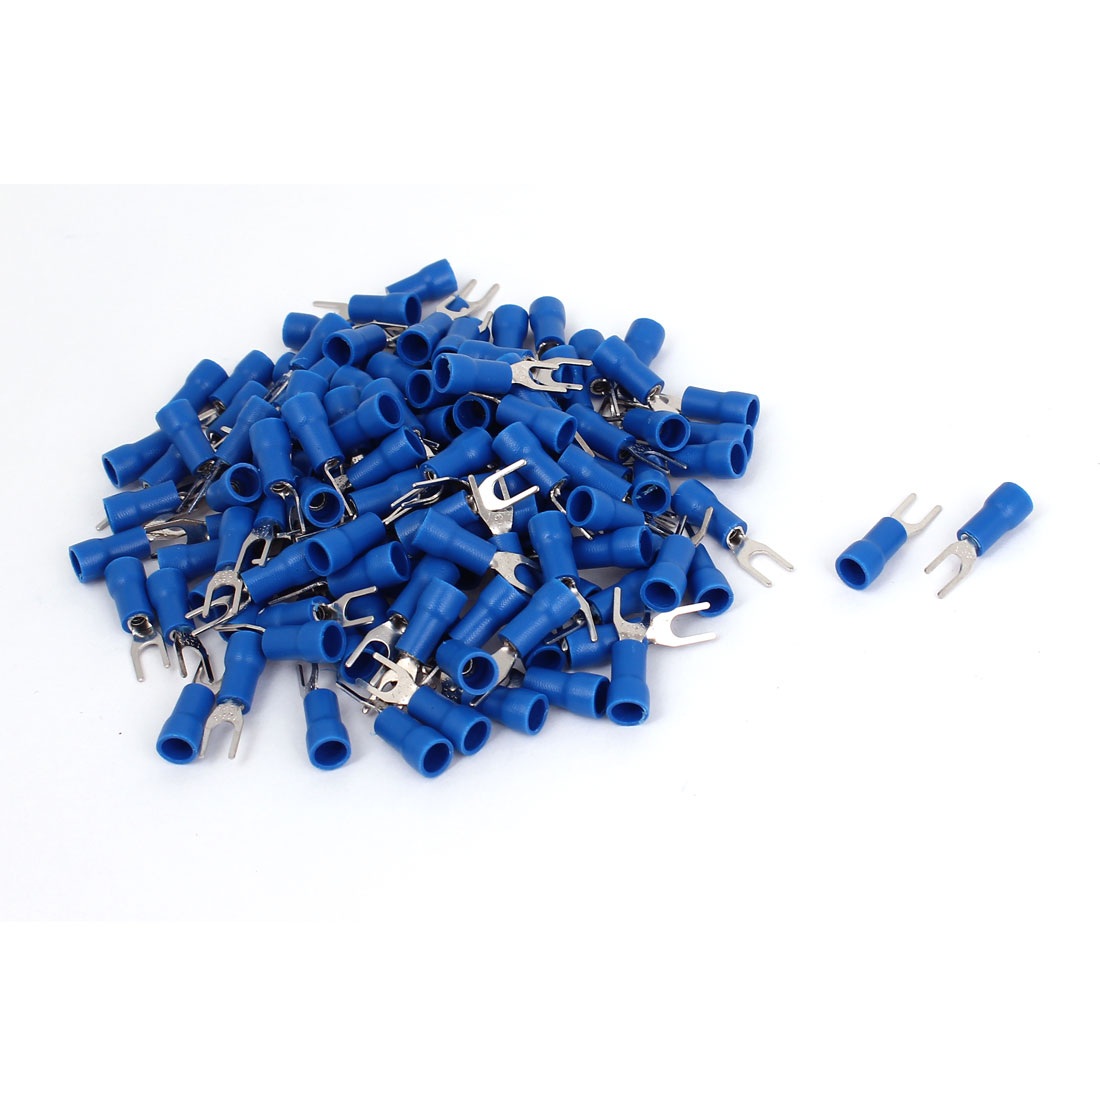 220 Pcs Blue 4# AWG 22-16 SV1.25-3 19A Wire Connector Insulated Fork Terminals